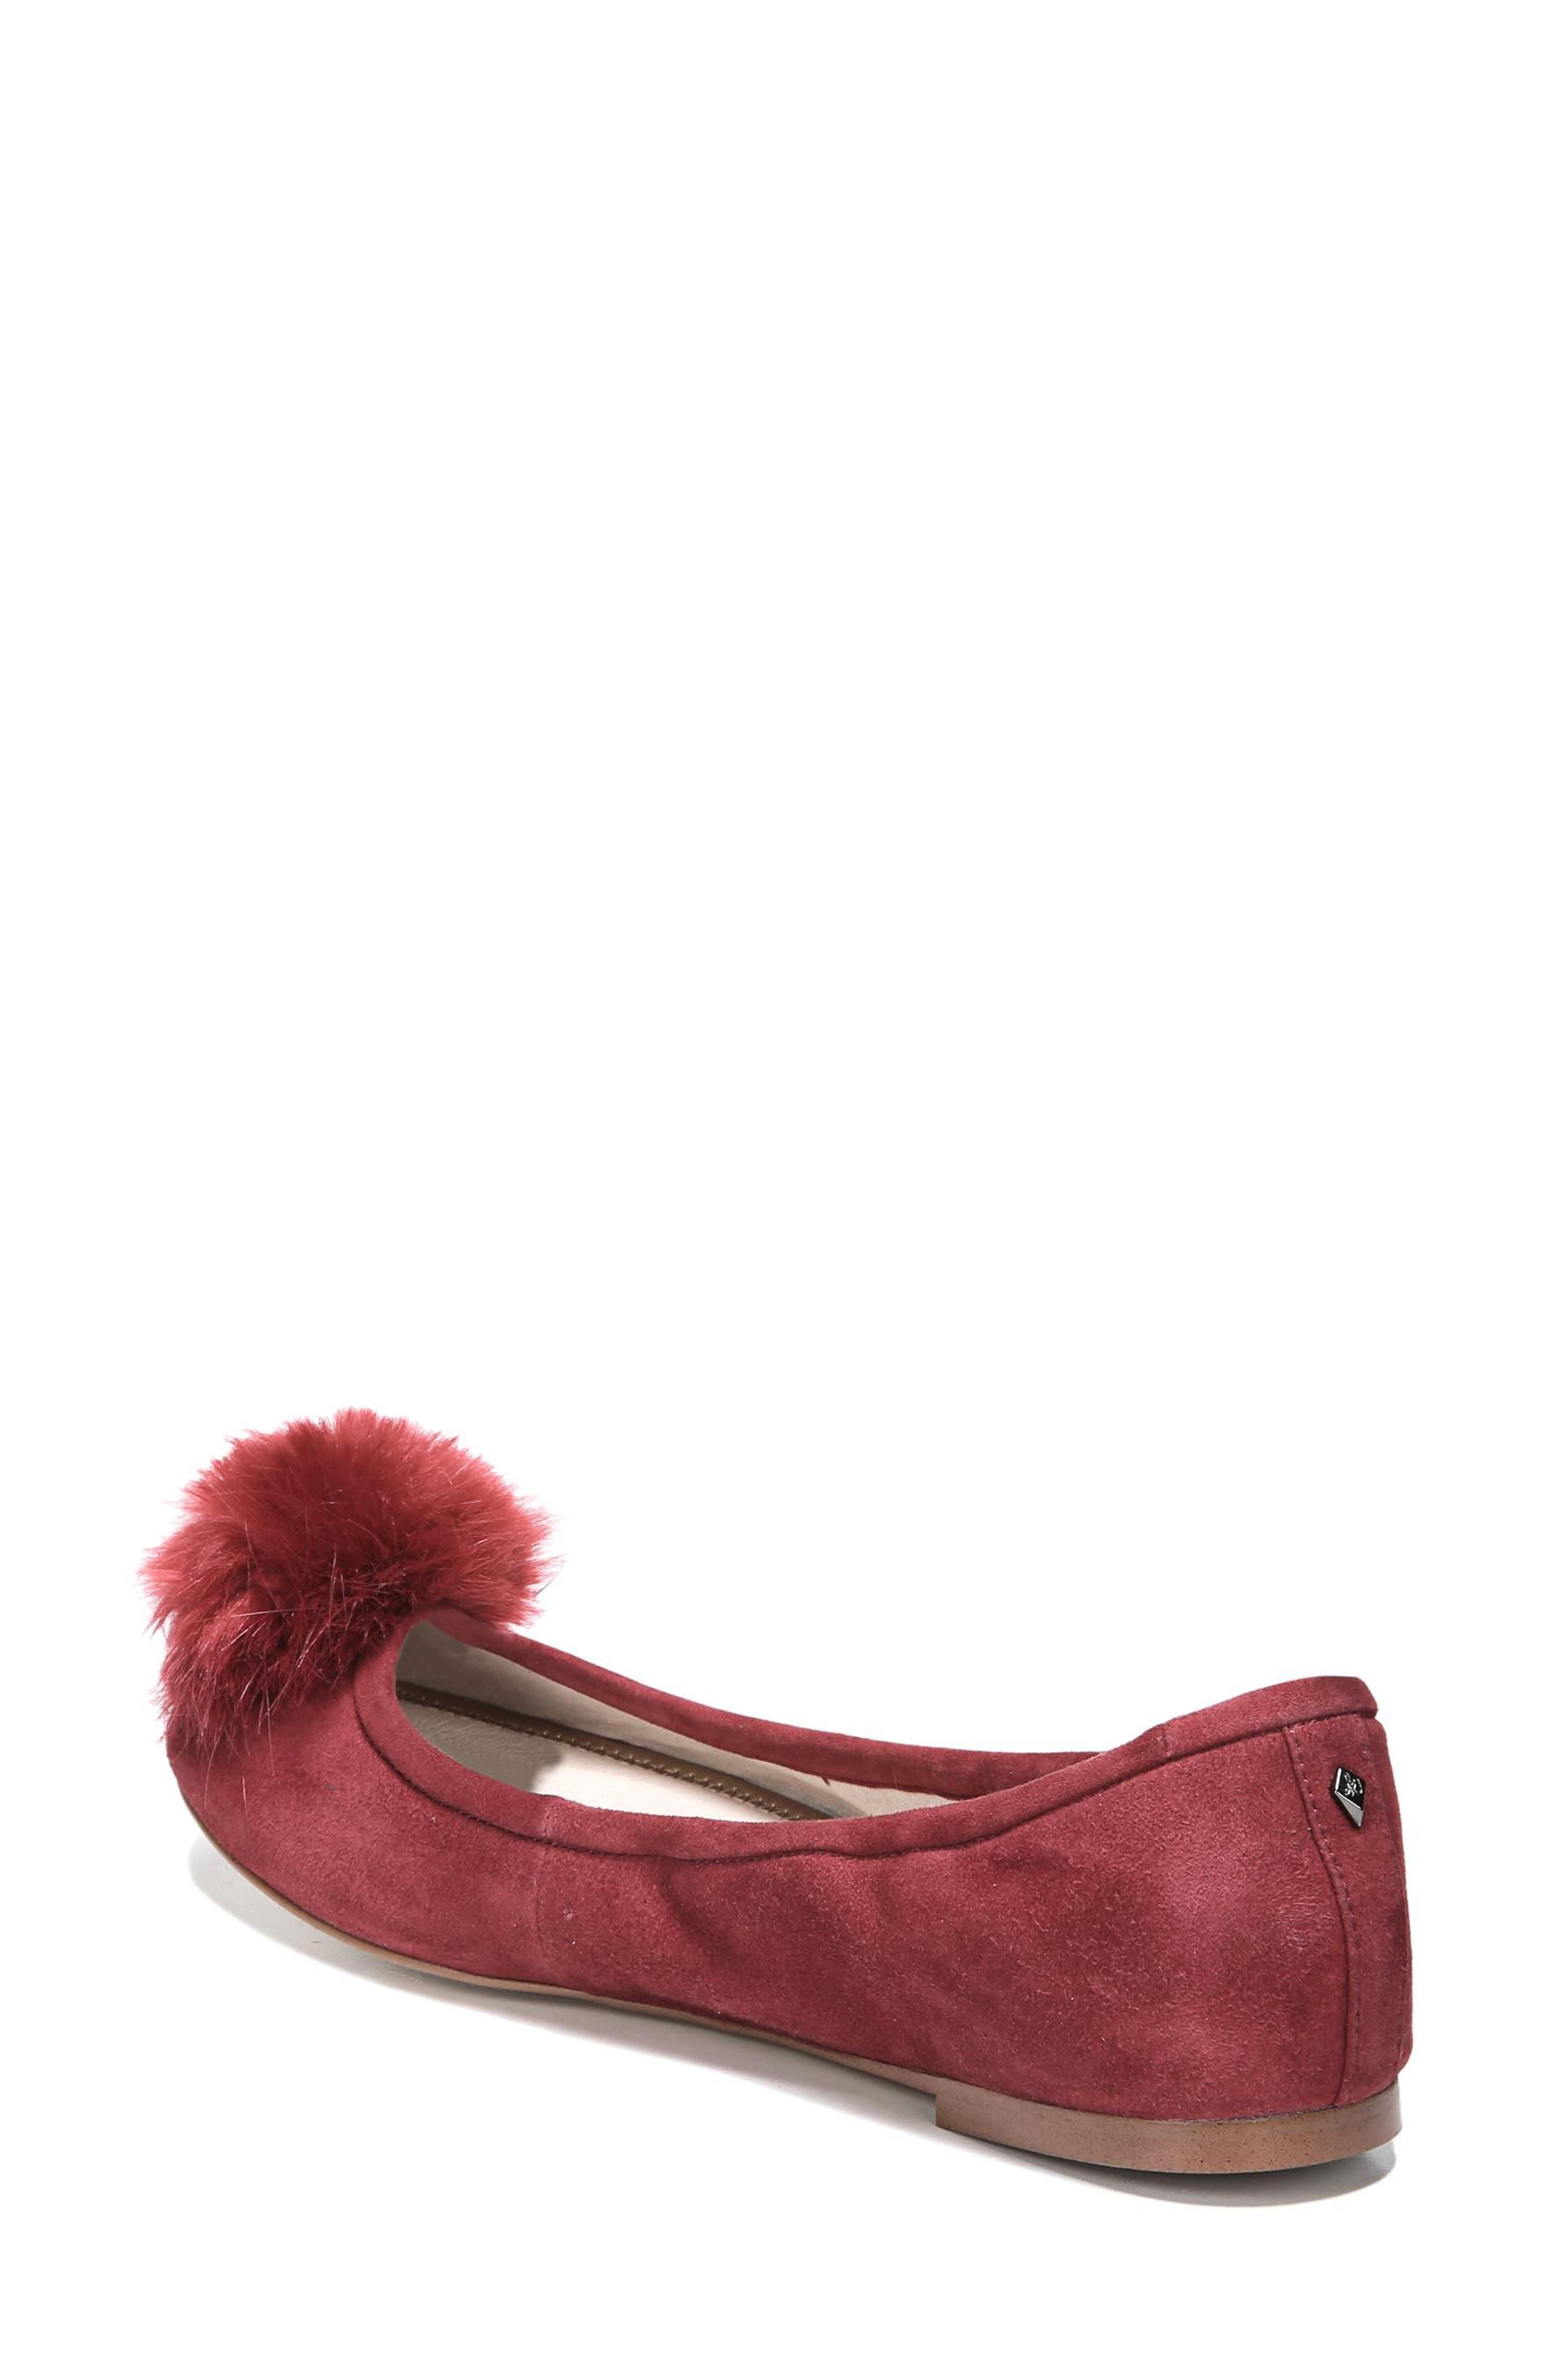 Farina Flat with Faux Fur Pompom,                             Alternate thumbnail 2, color,                             Tango Red Leather